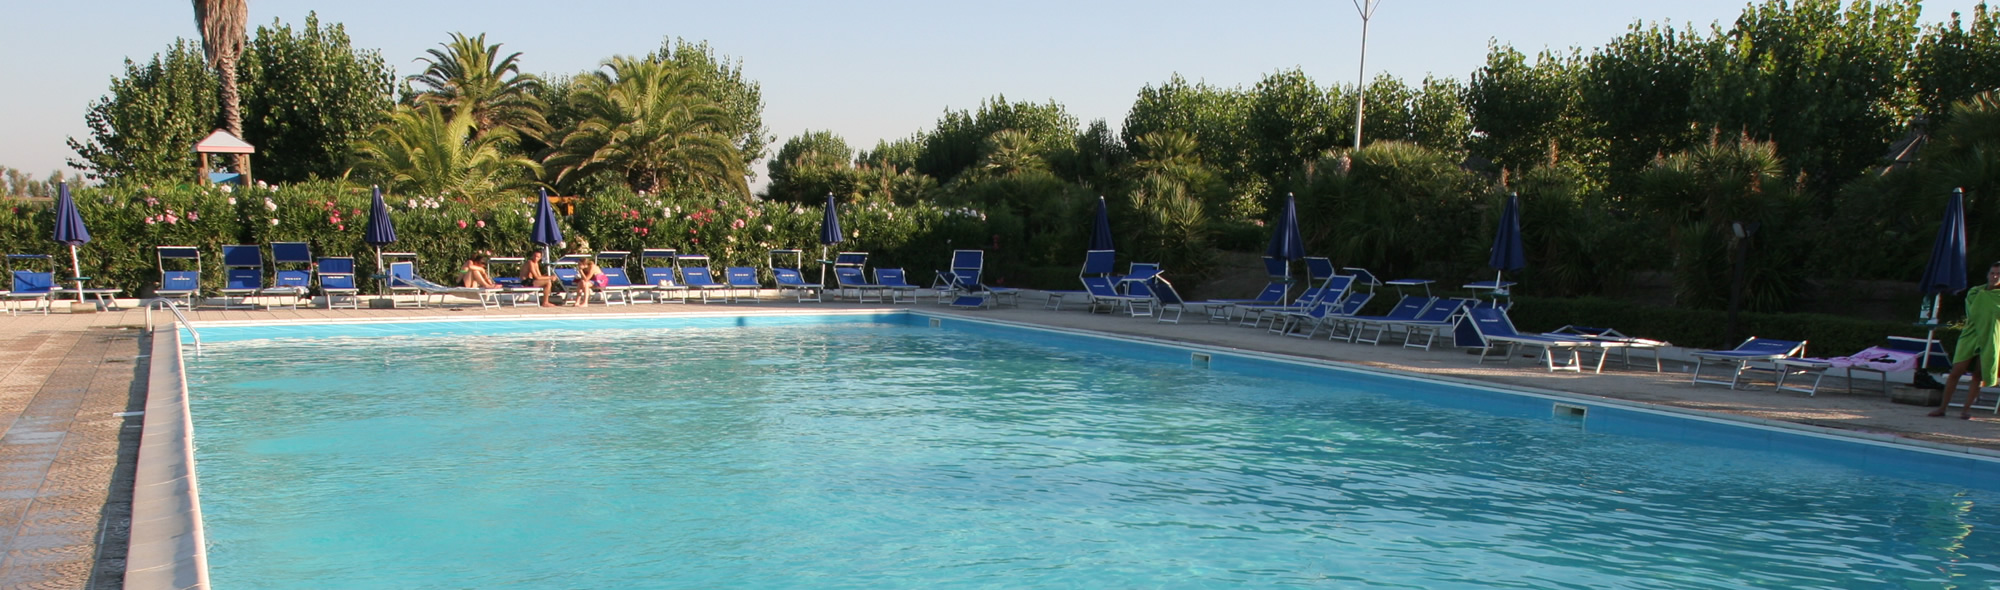 La piscina del villaggio African Beach